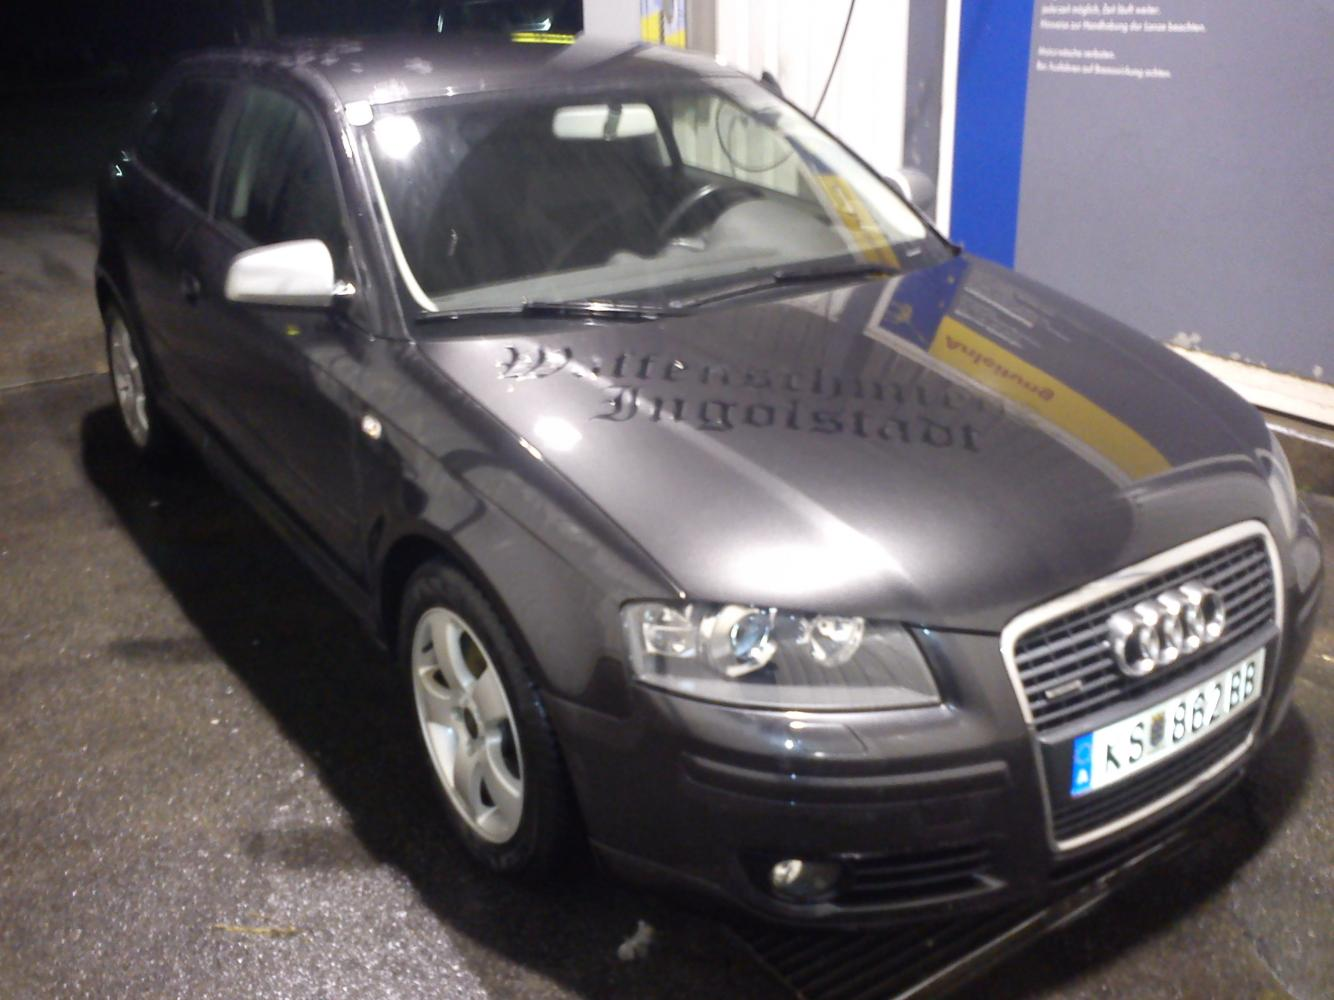 Neues Moped...Audi A3^^